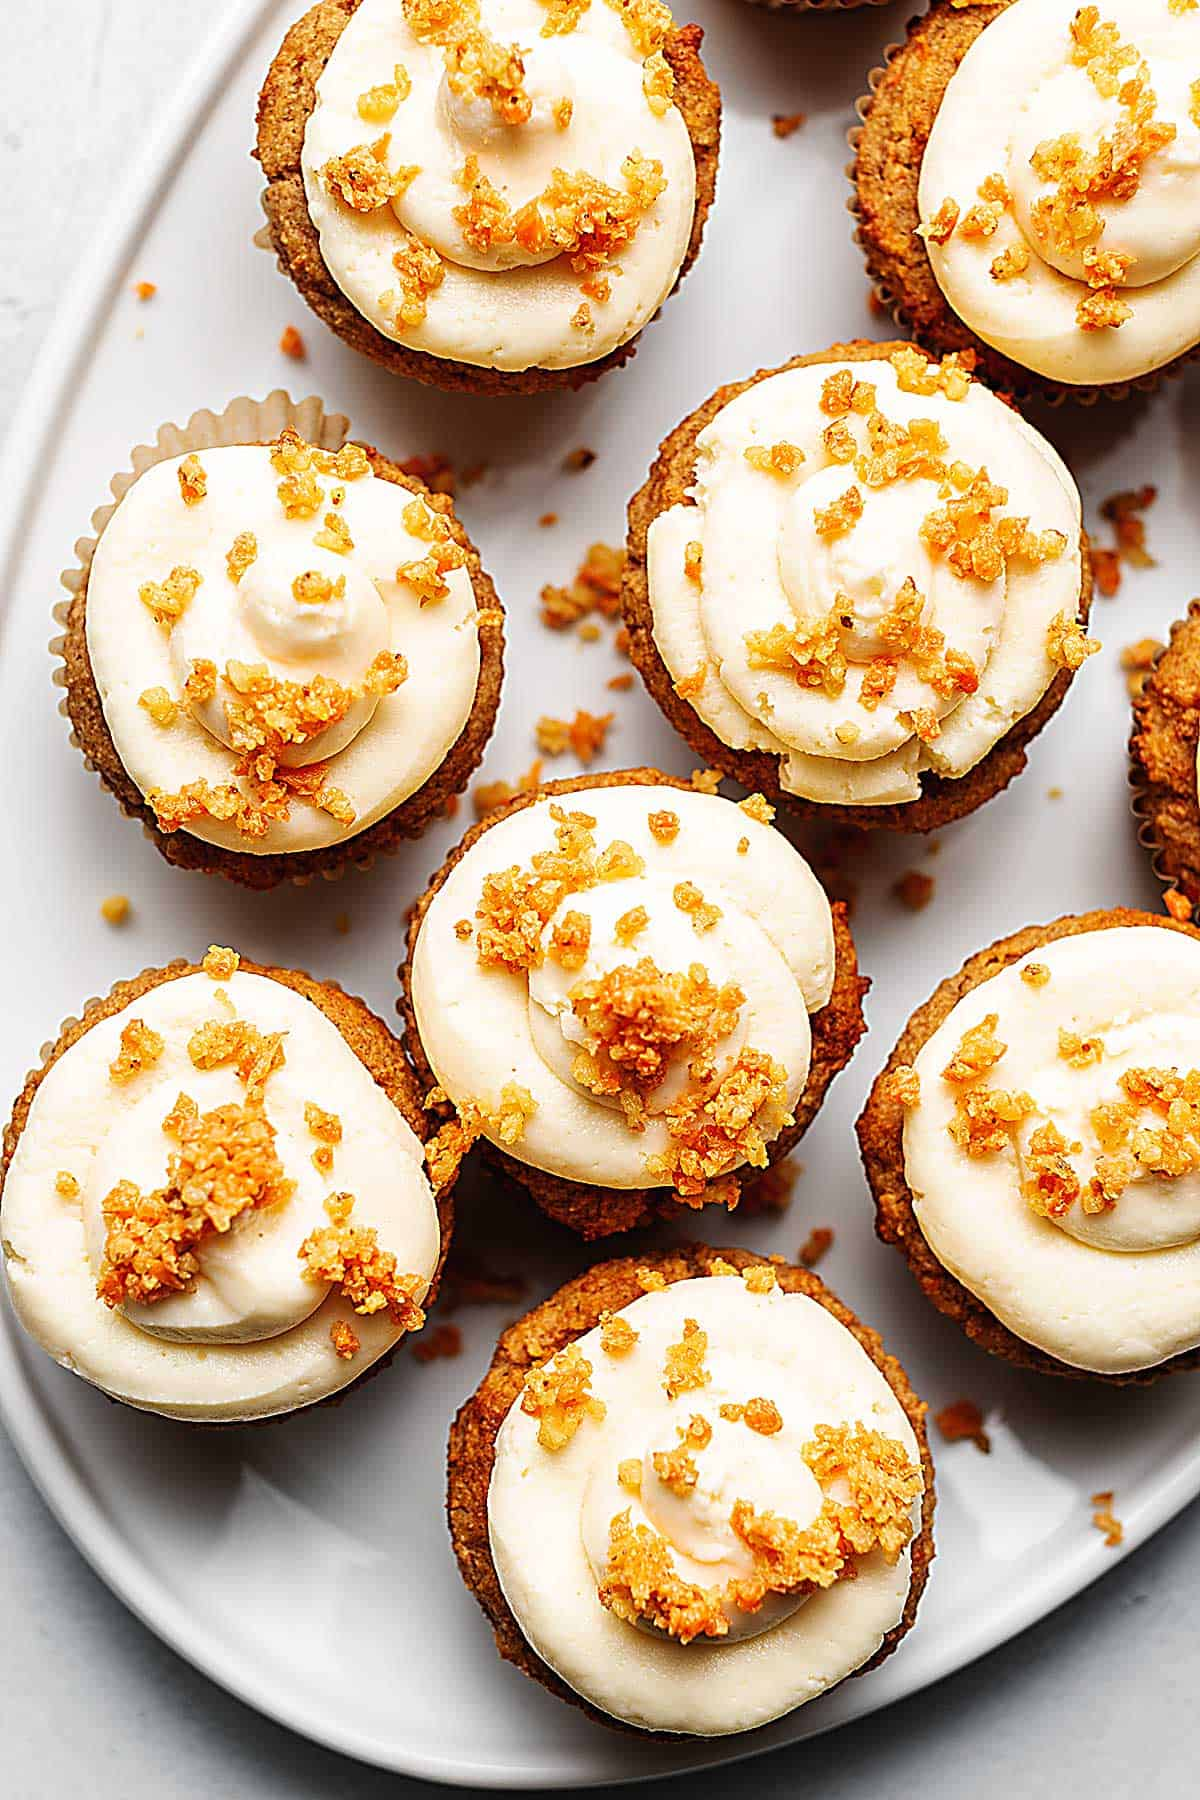 sugar free carrot cake cupcakes on a white platter